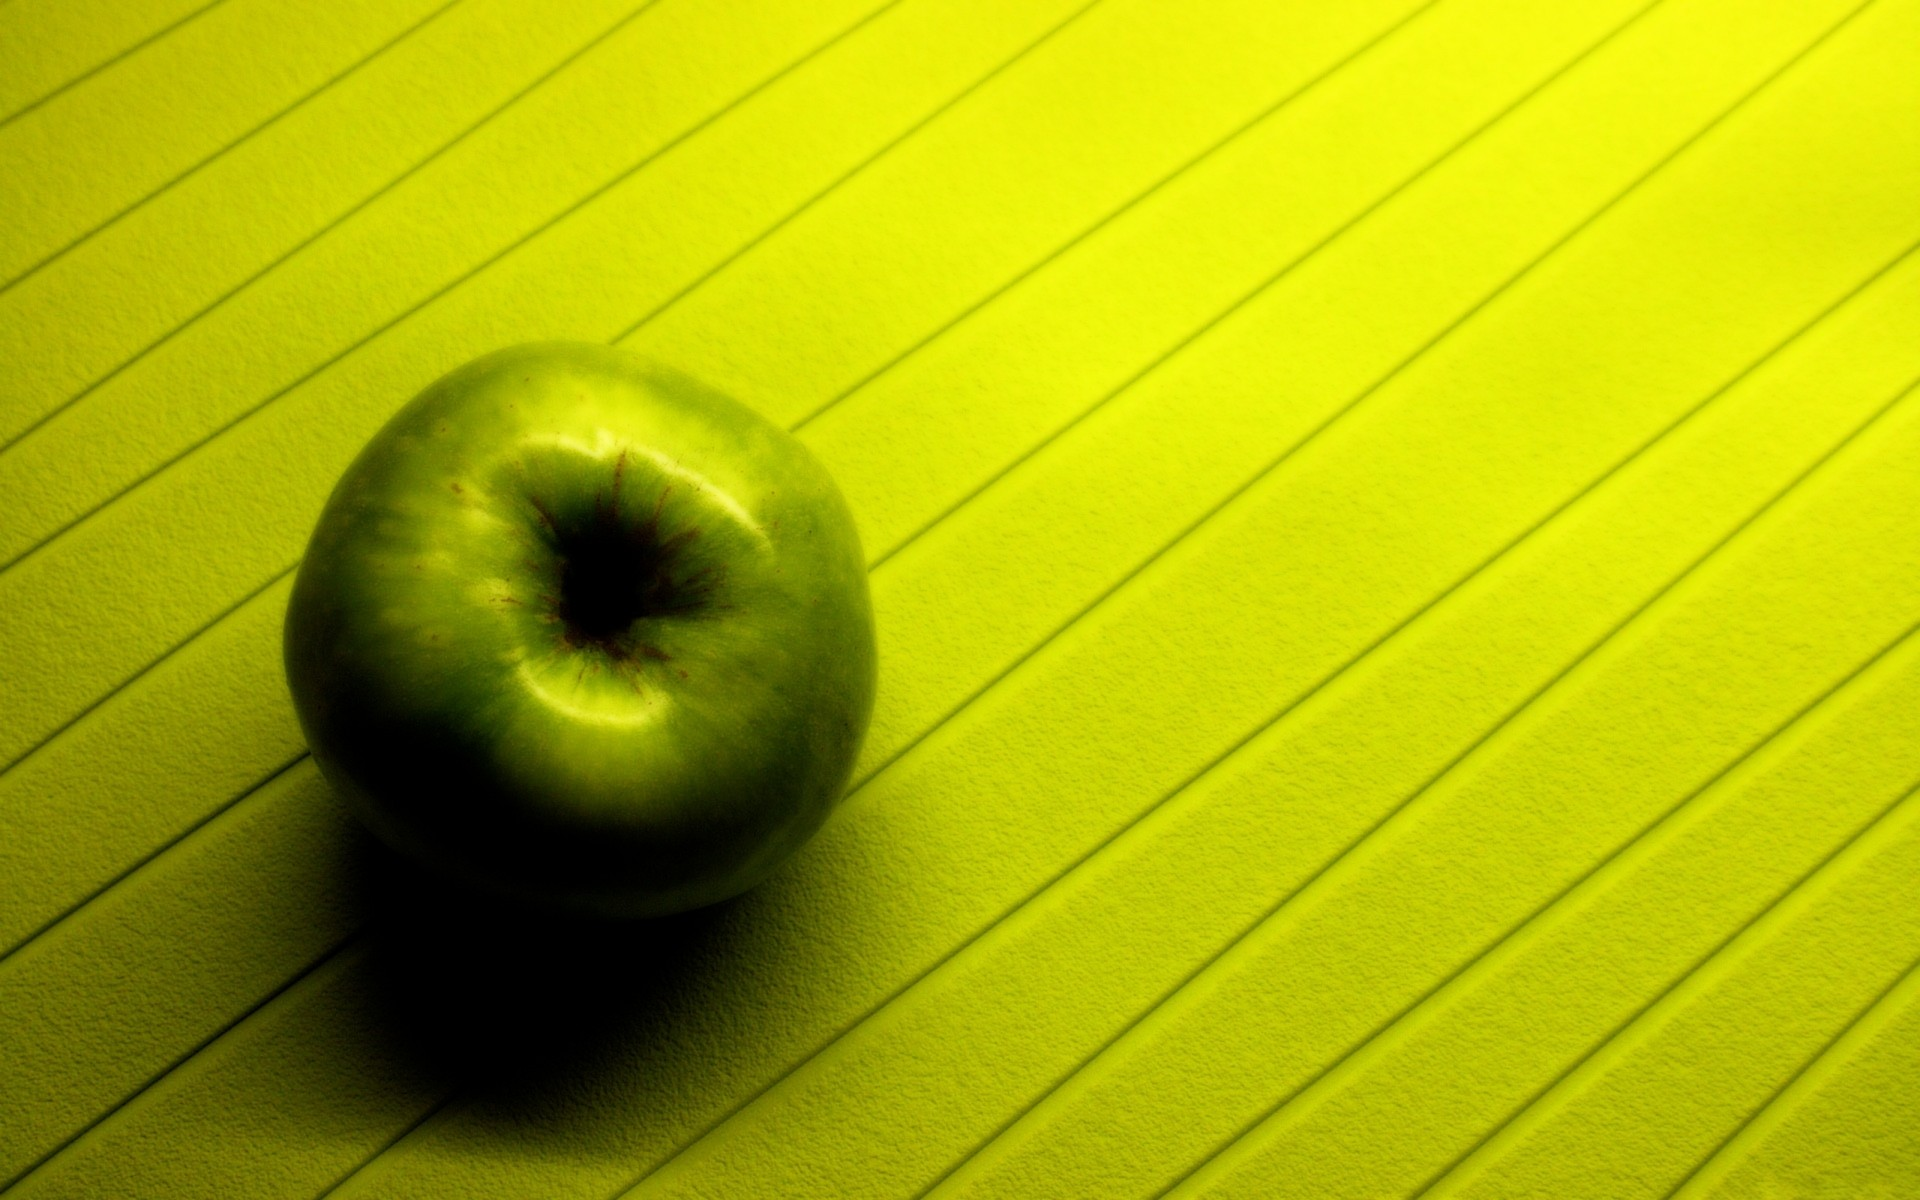 Wallpaper apple, shadow, texture, background, fruit